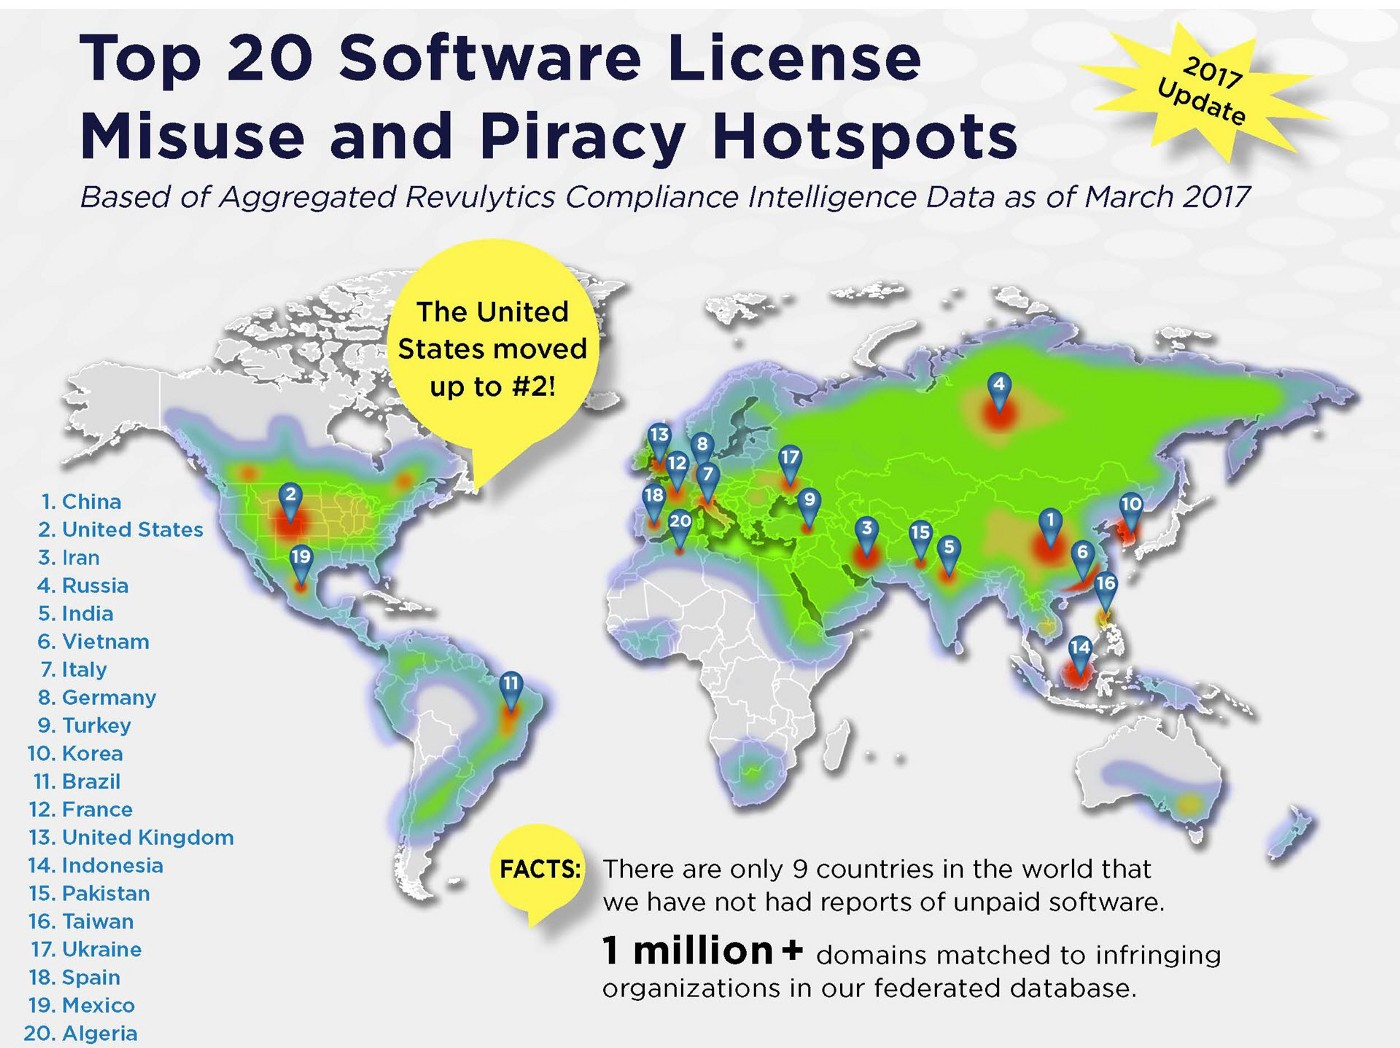 Top 20 Countries for Software Piracy and License Misuse (2017)